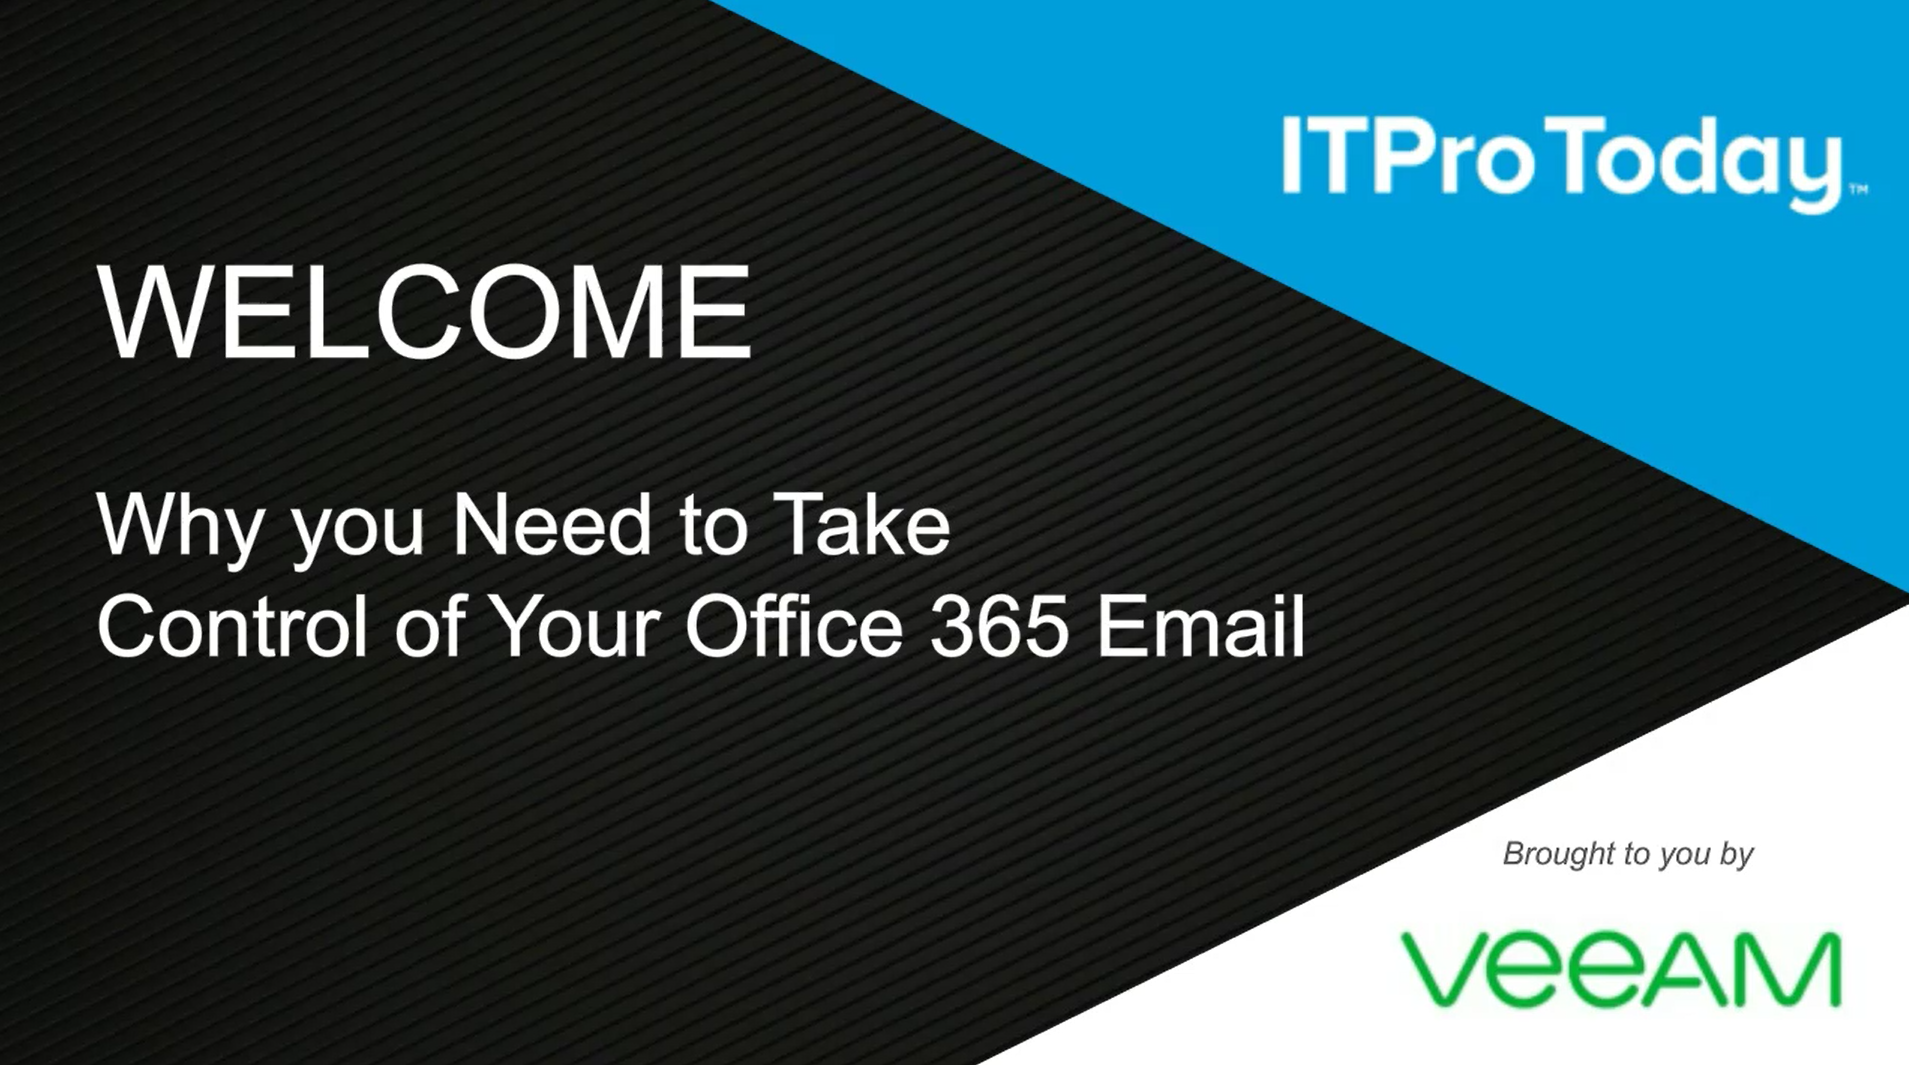 Why you Need to Take Control of Your Office 365 Email